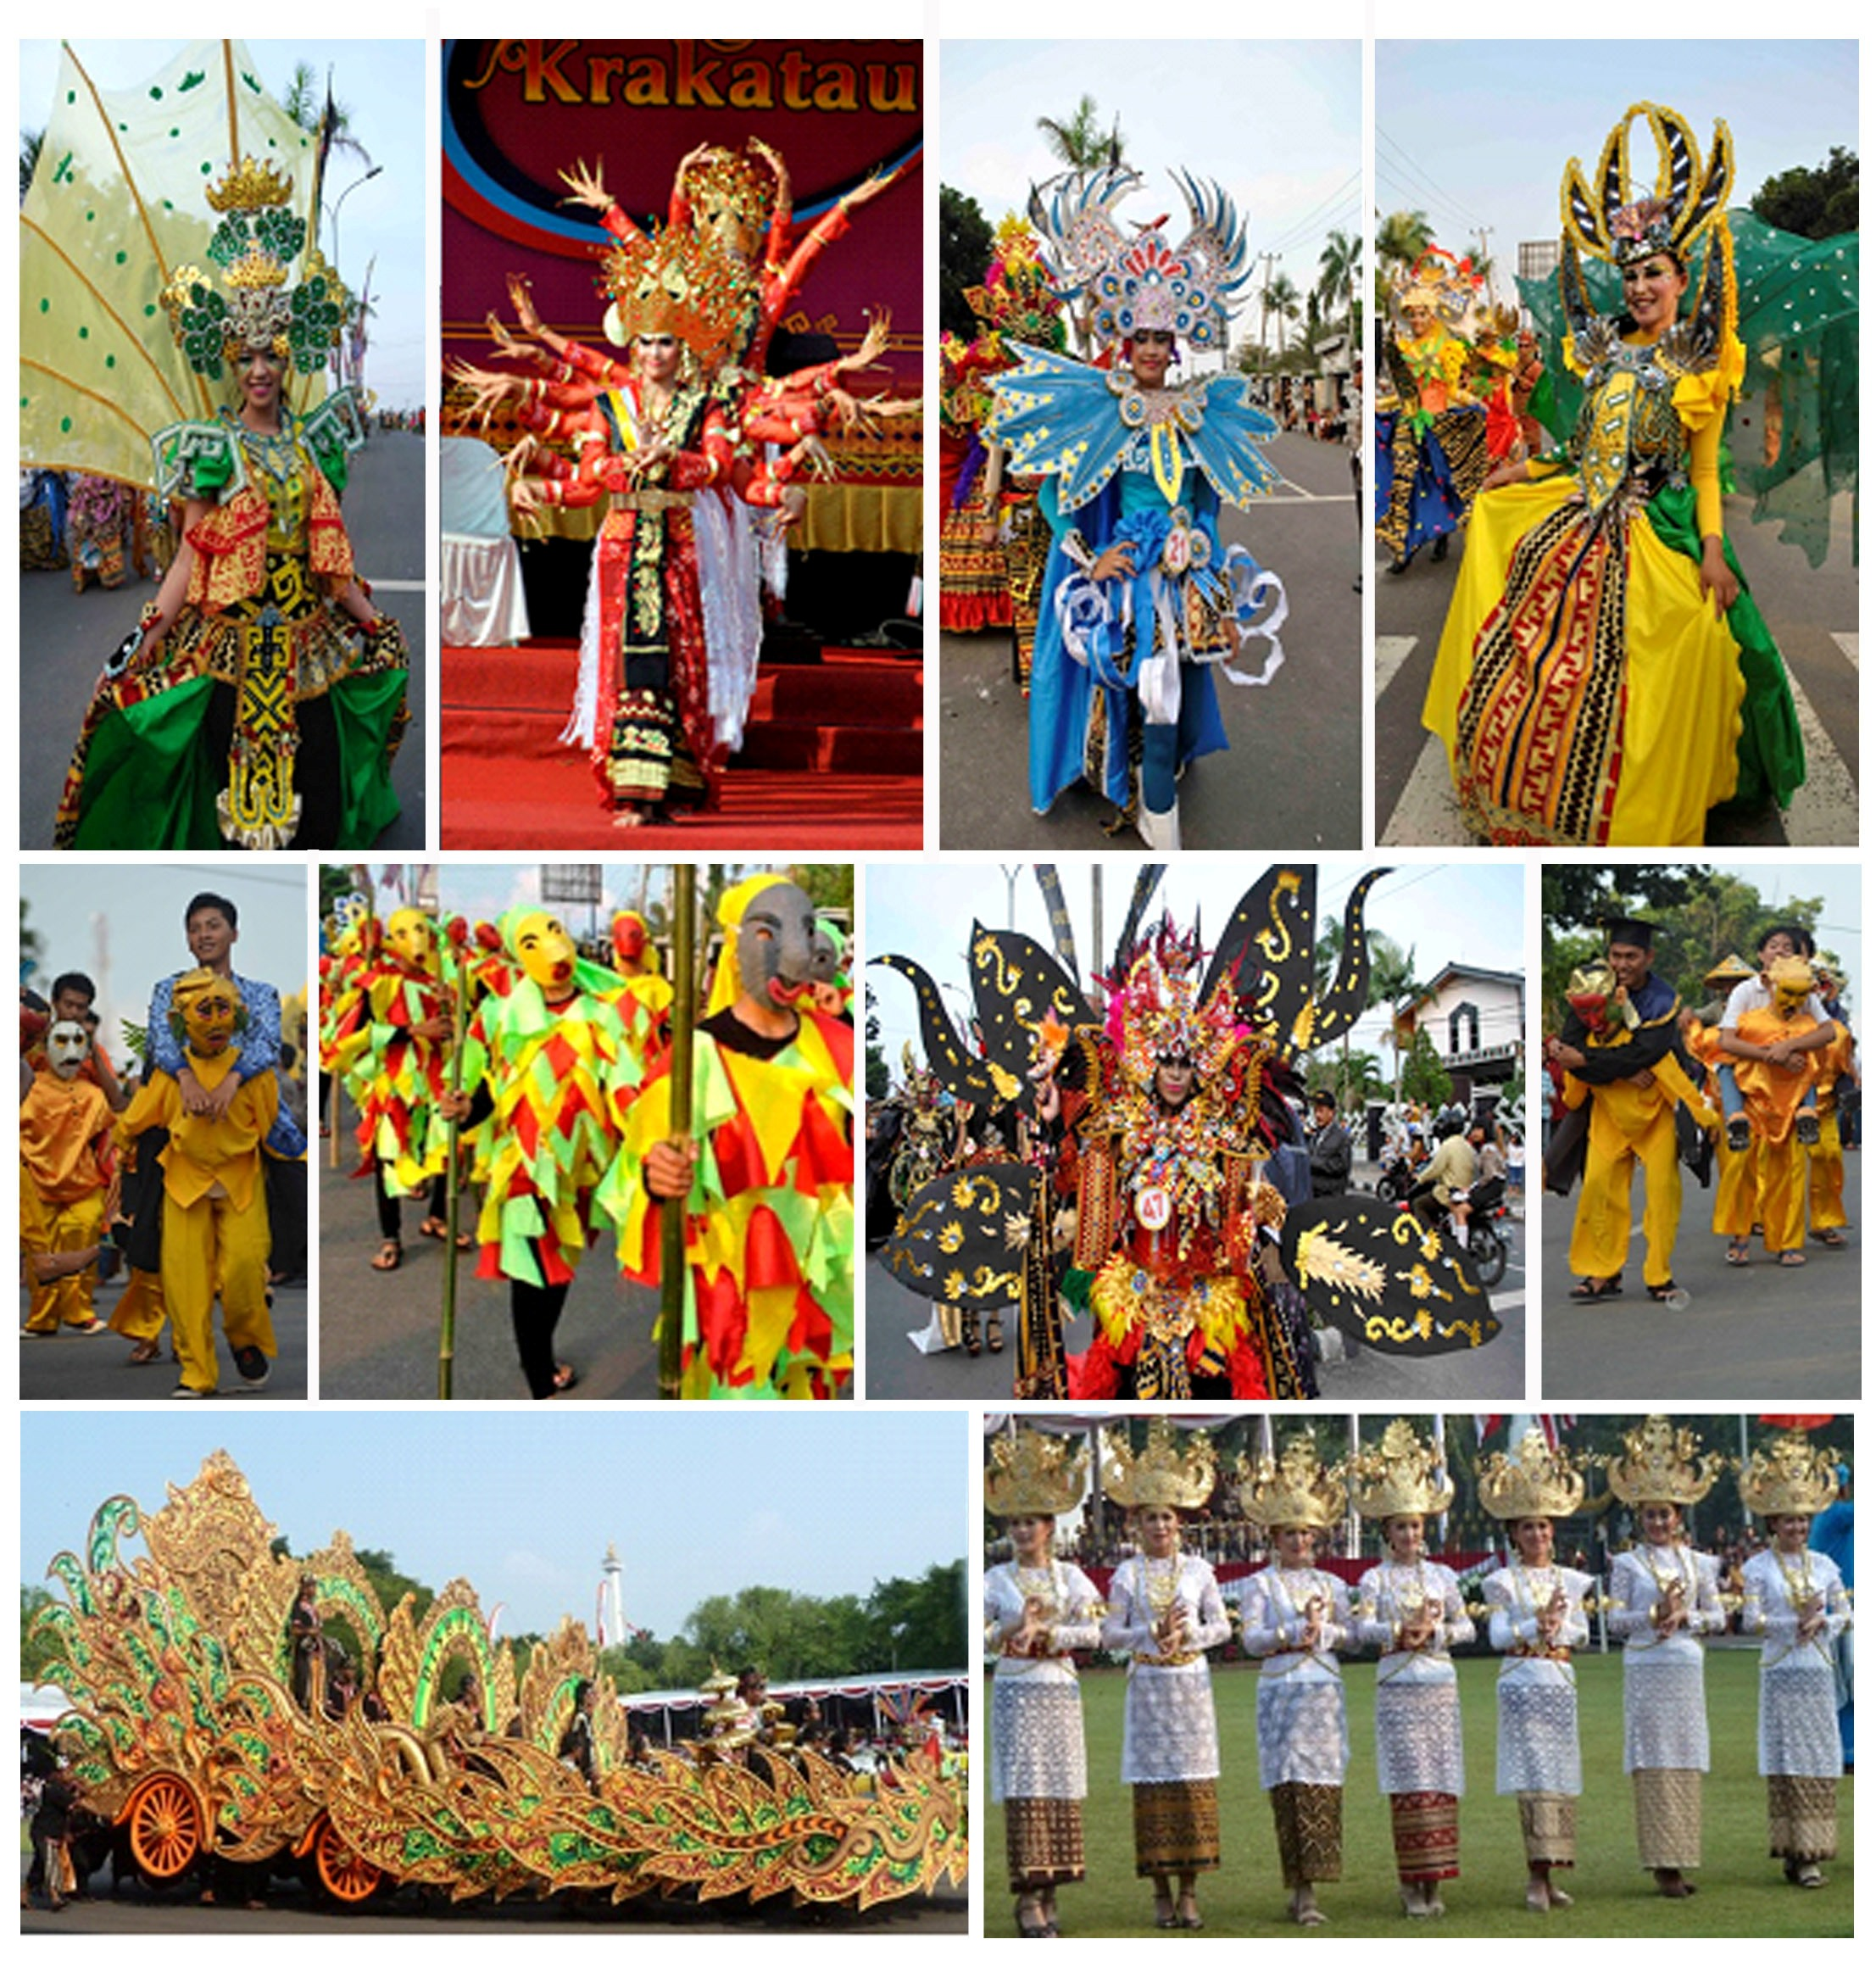 Carnival in Seychelles : The Power of Nature 'Krakatau Heritage' will be bringing a new dimension to the 2014 edition